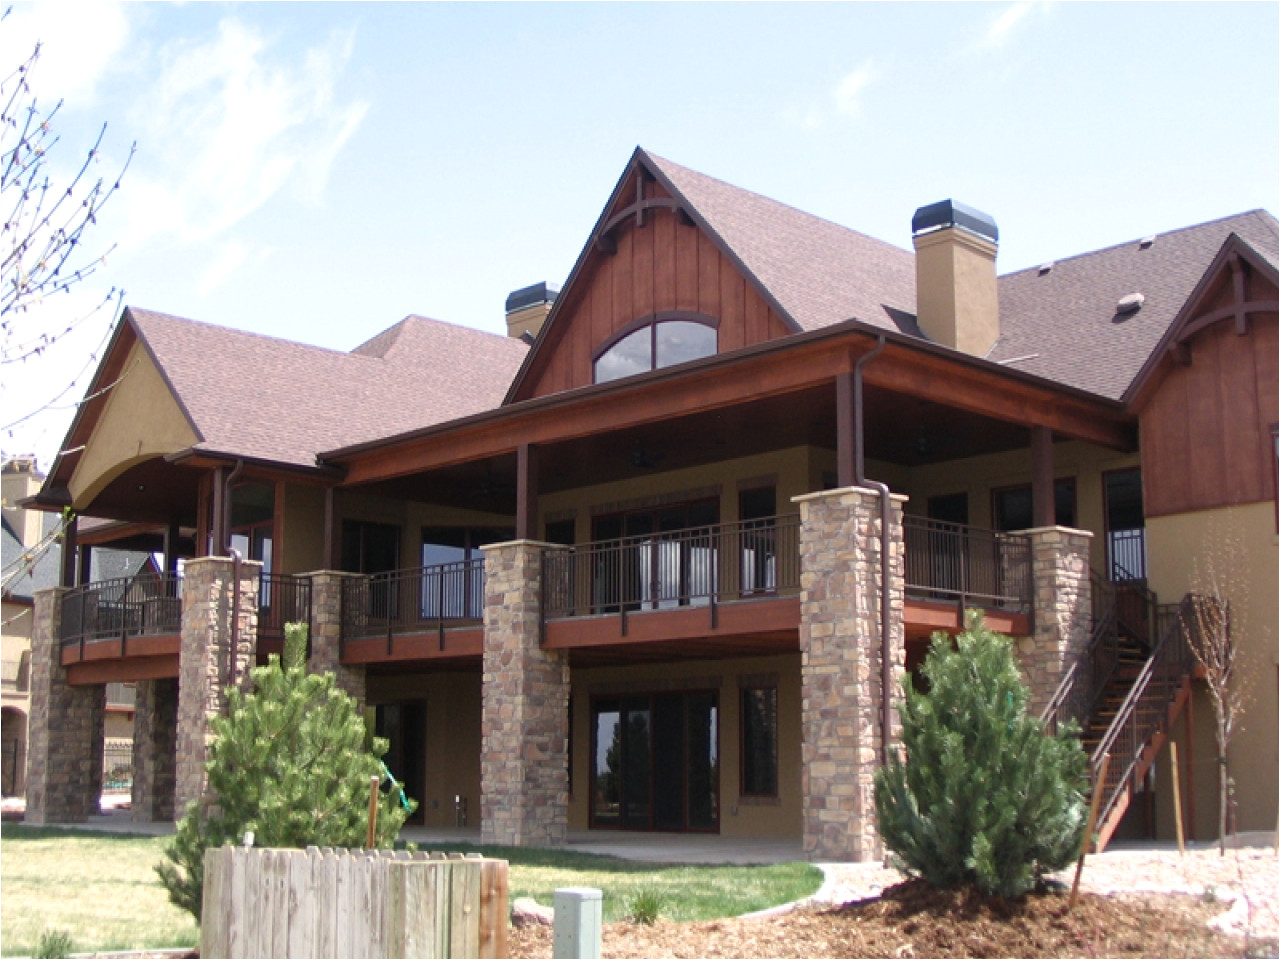 03c87fa41ee83b82 mountain house plans with walkout basement mountain ranch house plans